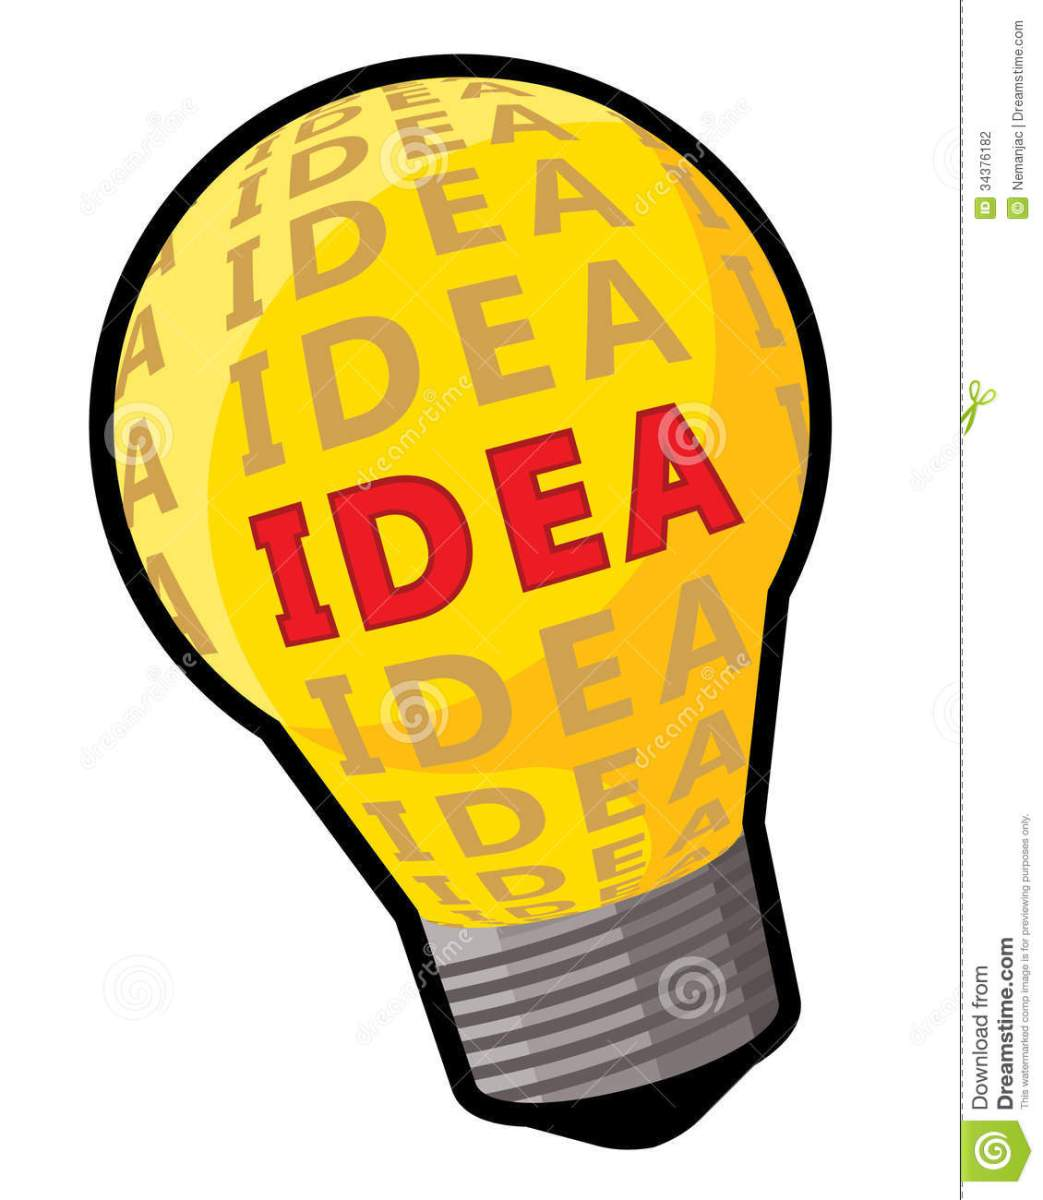 lightbulb thinking clipart #9